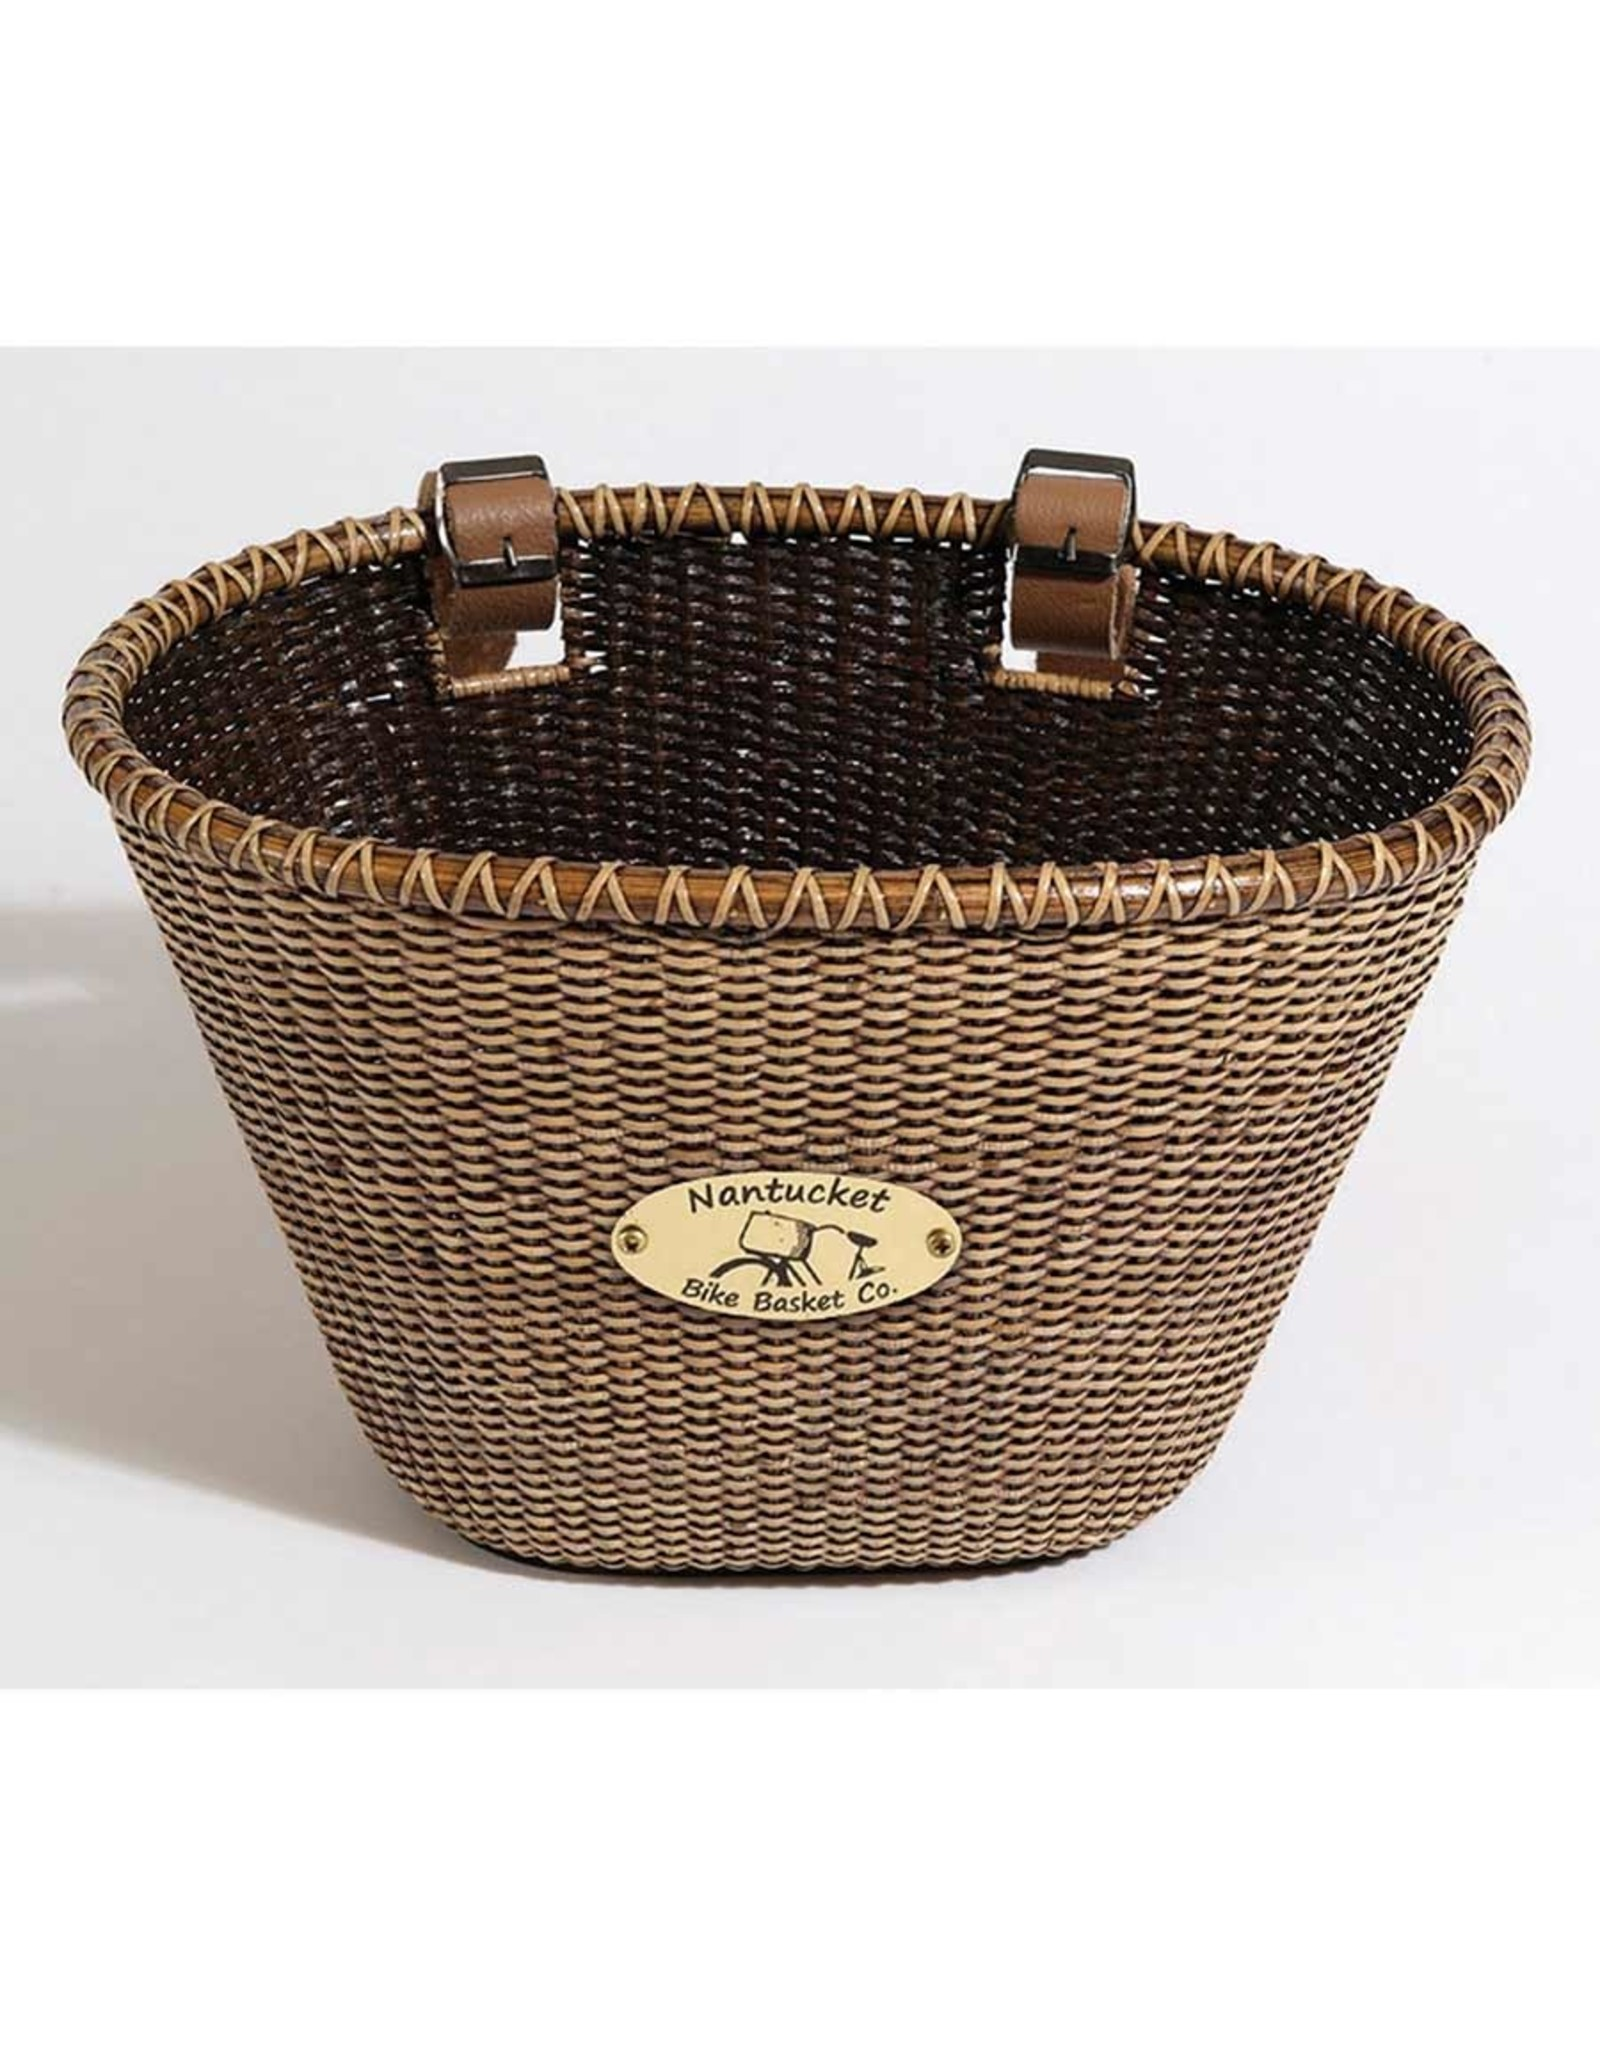 Nantucket Nantucket, Ligthship, Oval basket, 14''x10''x8.5'', Stained